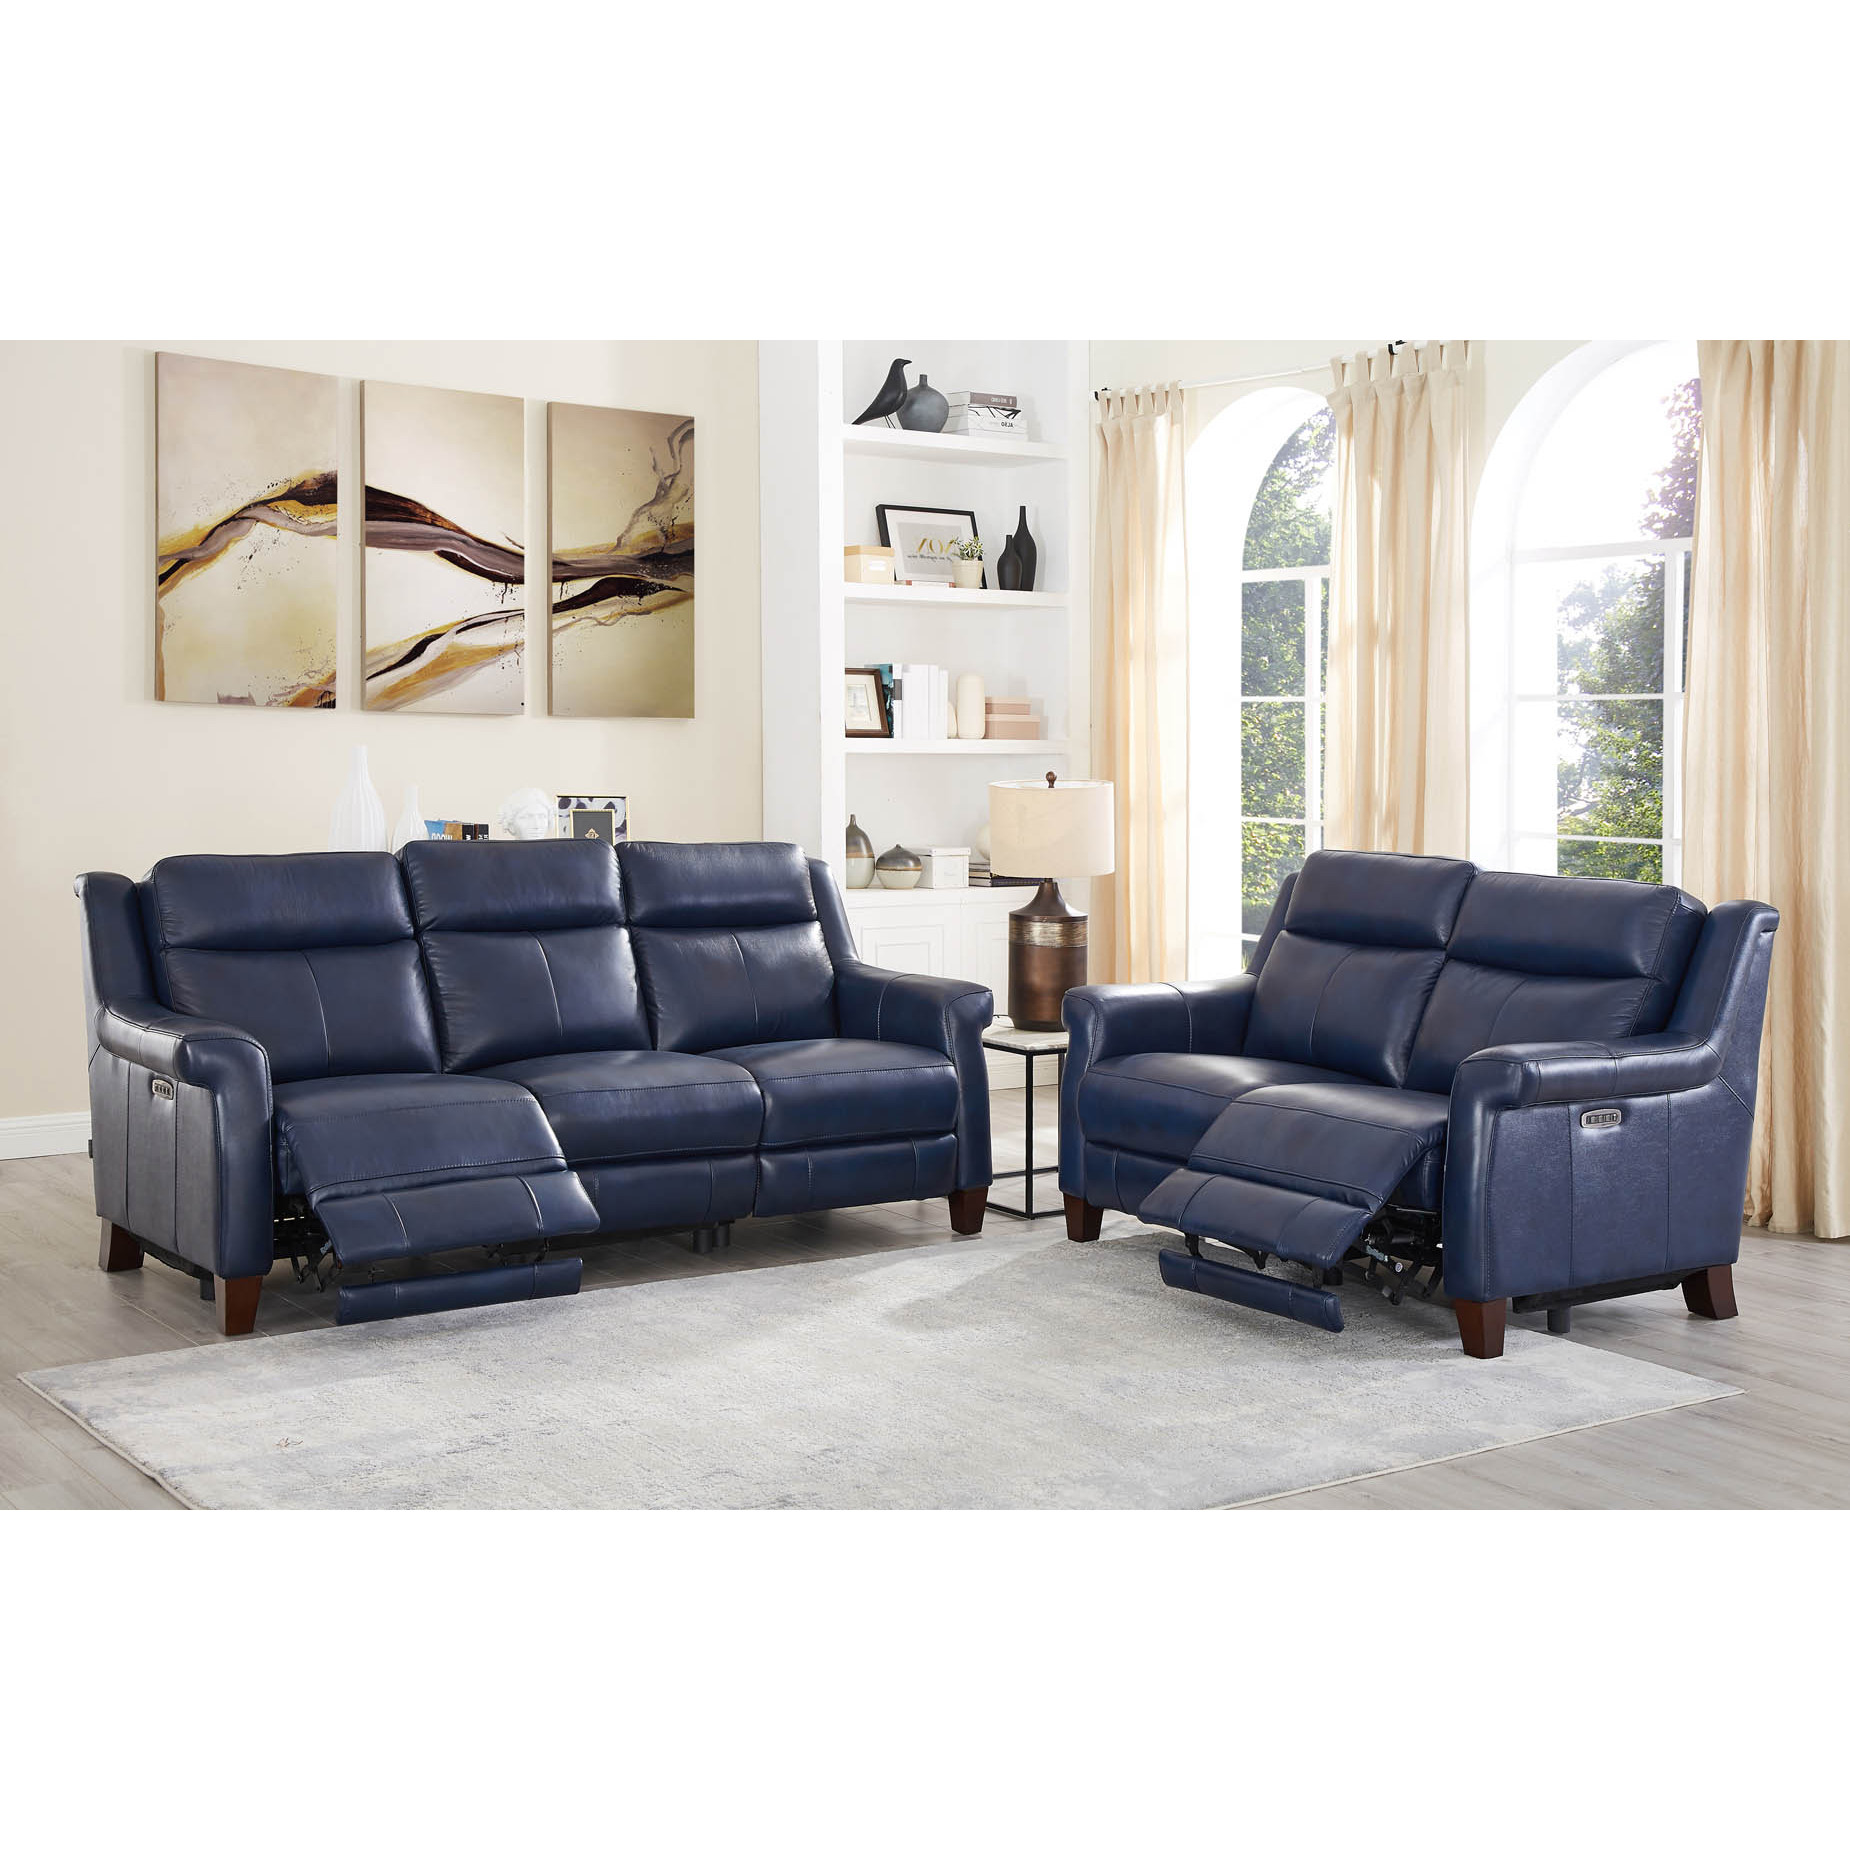 Tremendous Navona Leather 2 Piece Set Power Reclining Sofa Loveseat In Blue By Hydeline Leather Pdpeps Interior Chair Design Pdpepsorg